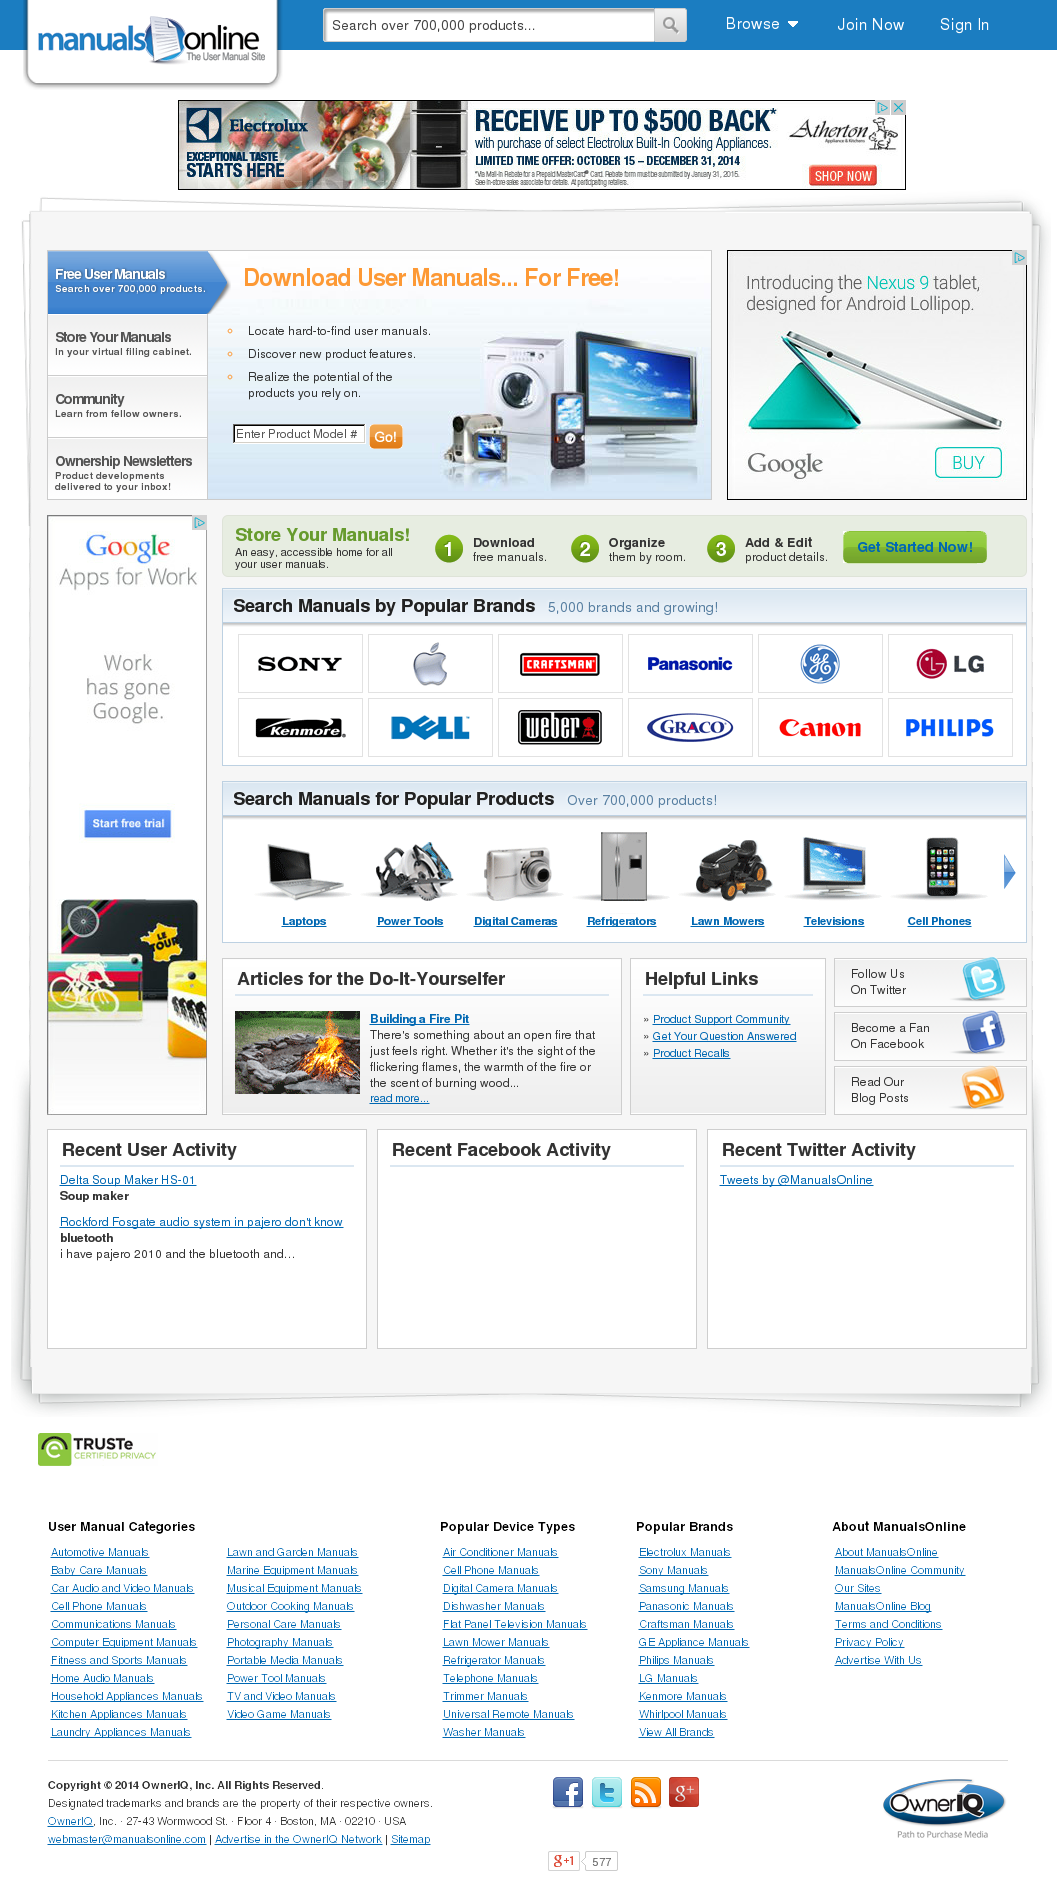 Manuals Online Compeors Revenue And Employees Owler Company Profile